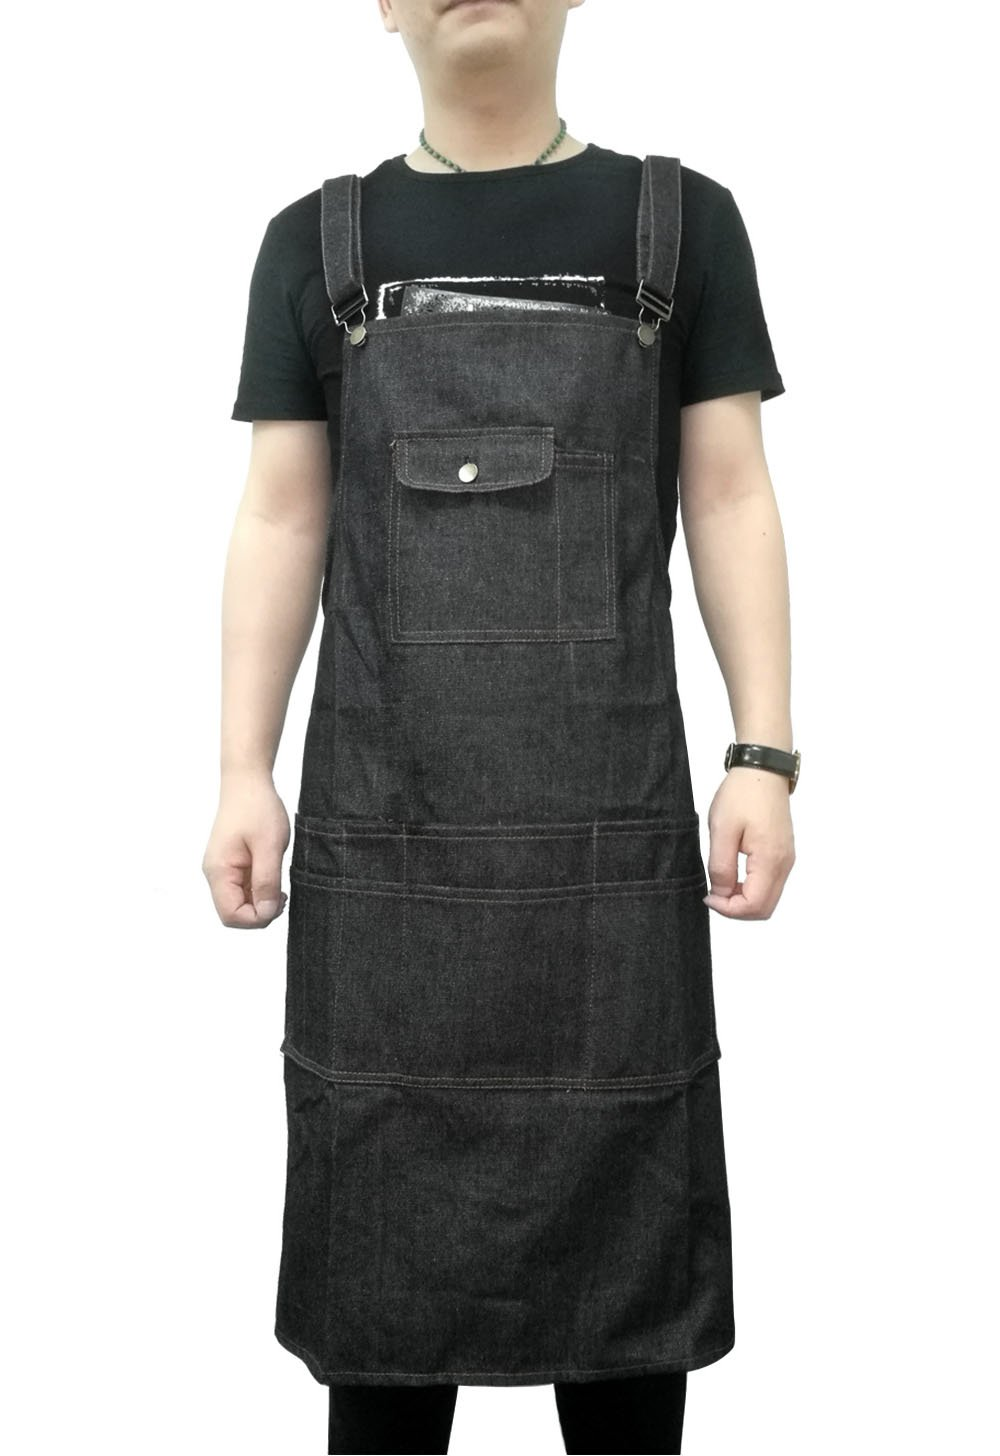 Aivtalk Denim Apron with Tool Pockets for Men Women Kitchen Cooking Grilling Craftsmen Adjustable Straps up to XXL Black